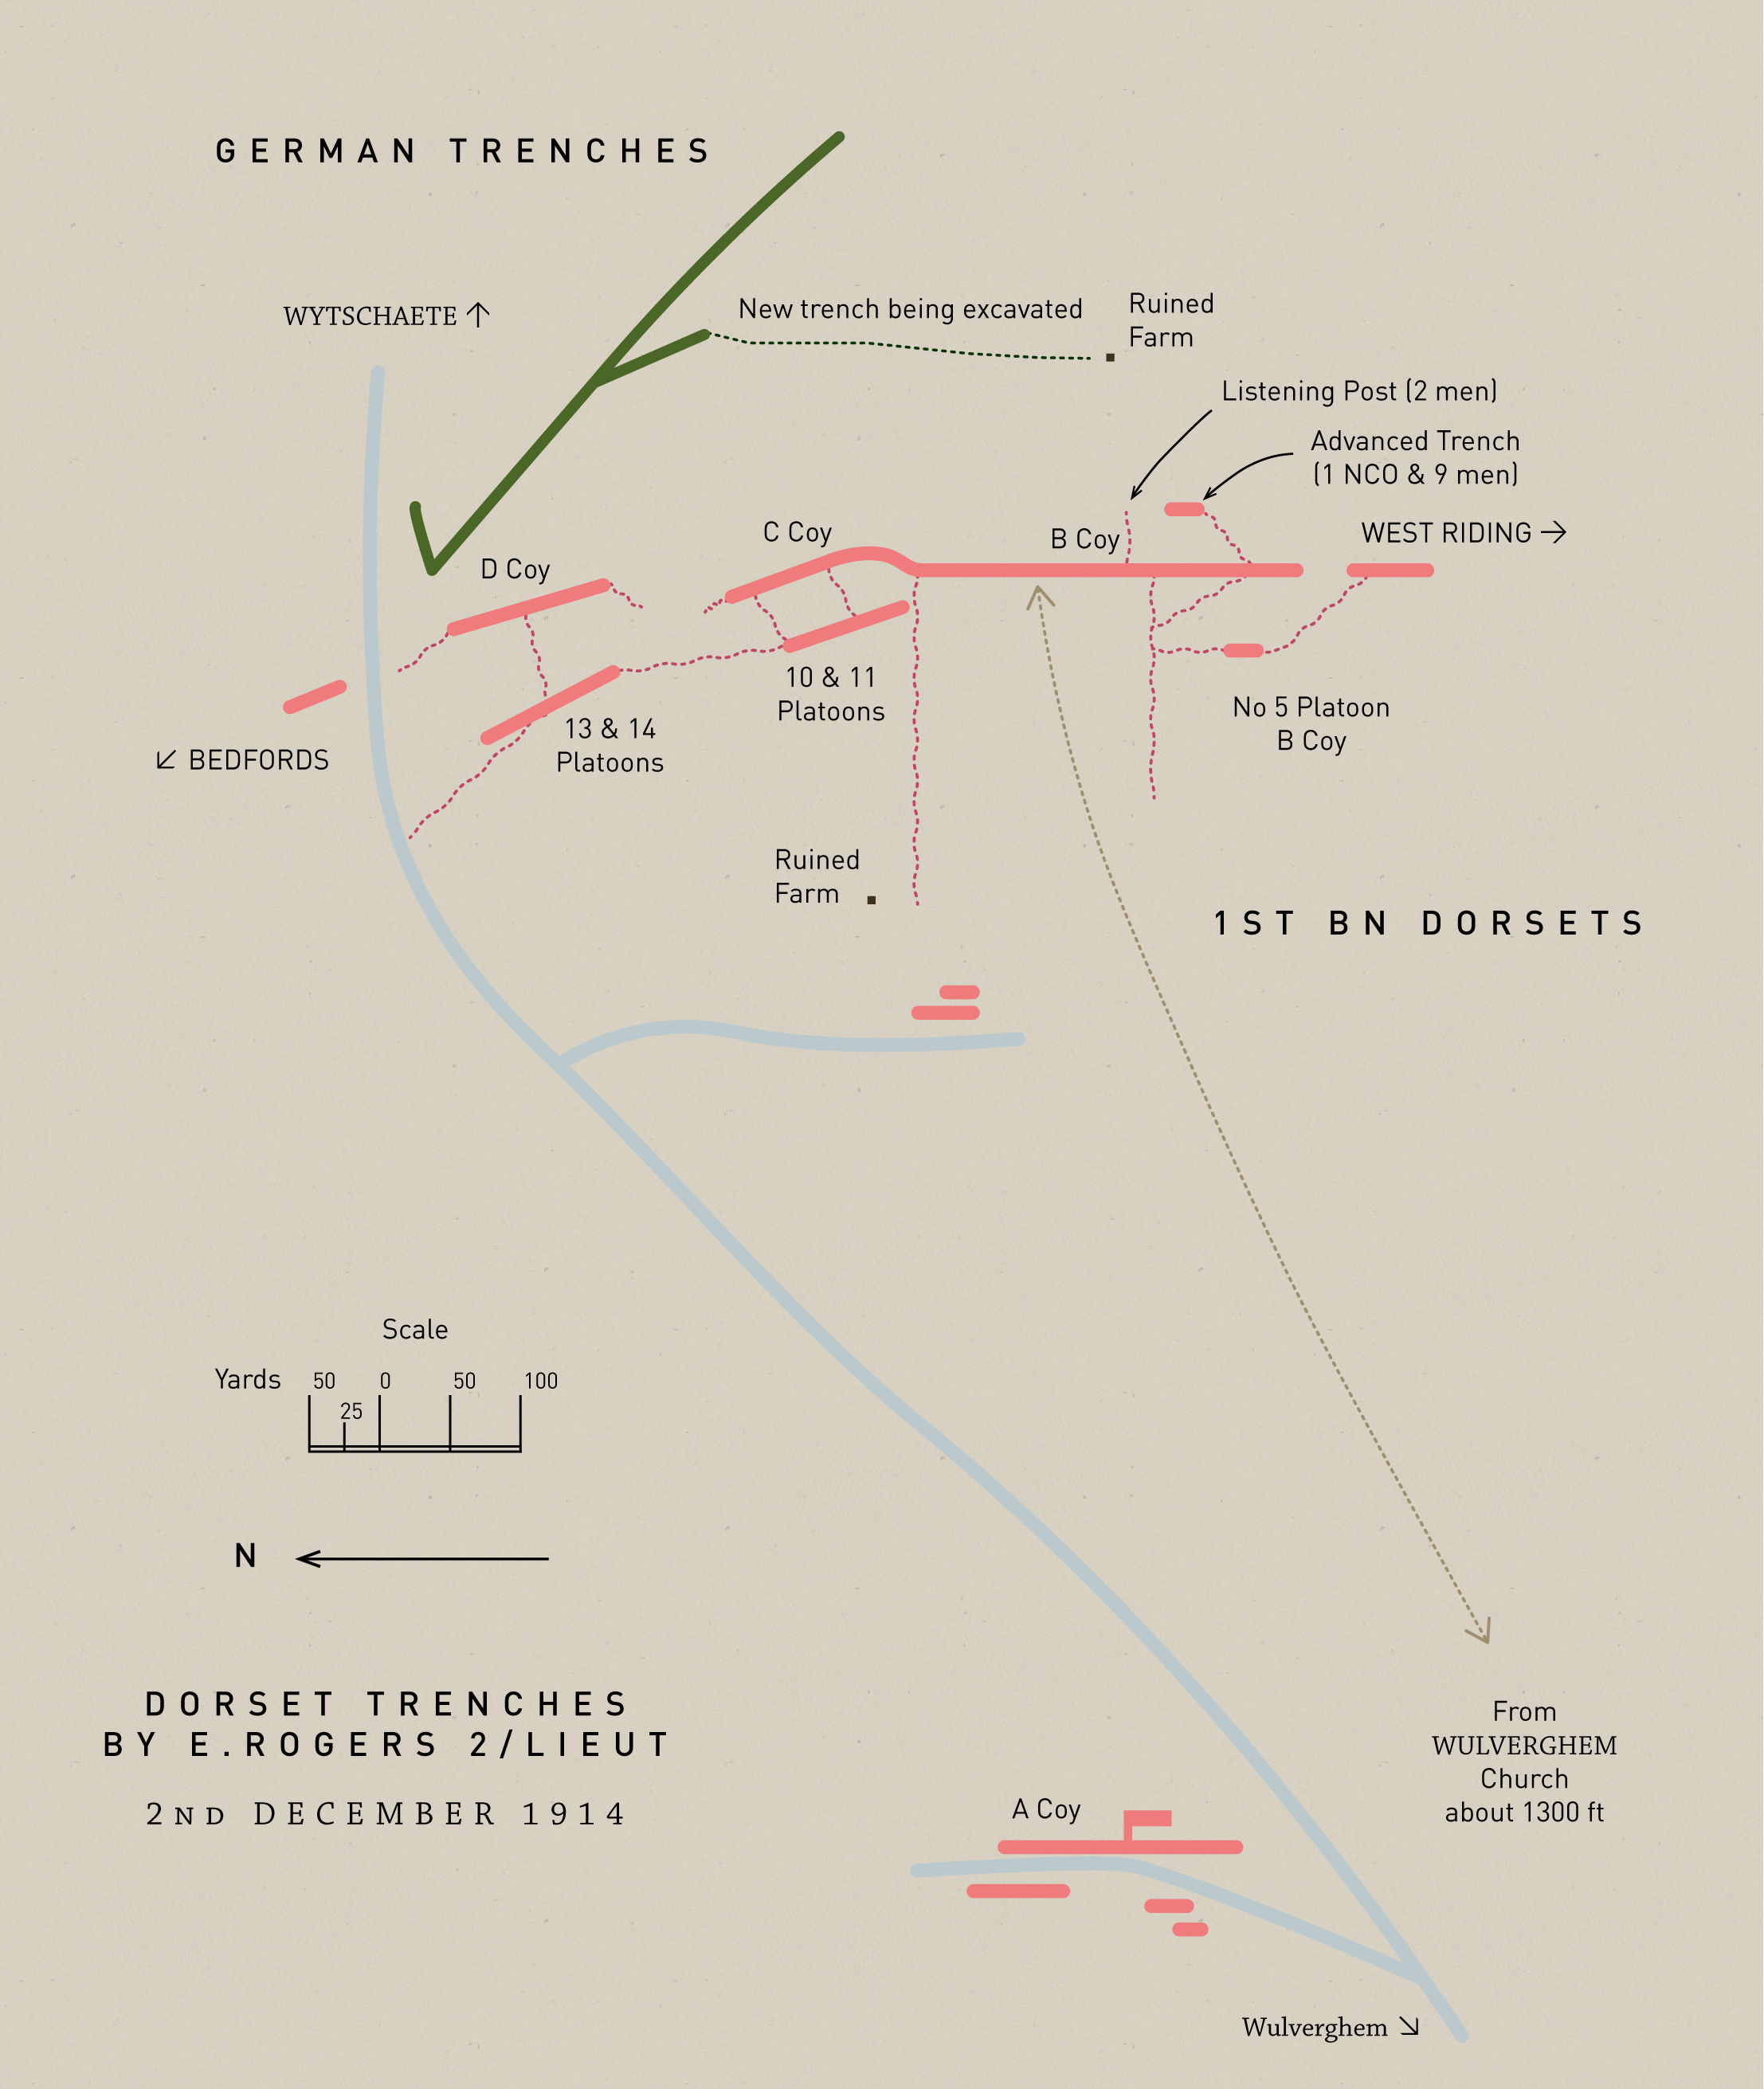 A map of the Dorsets' trenches